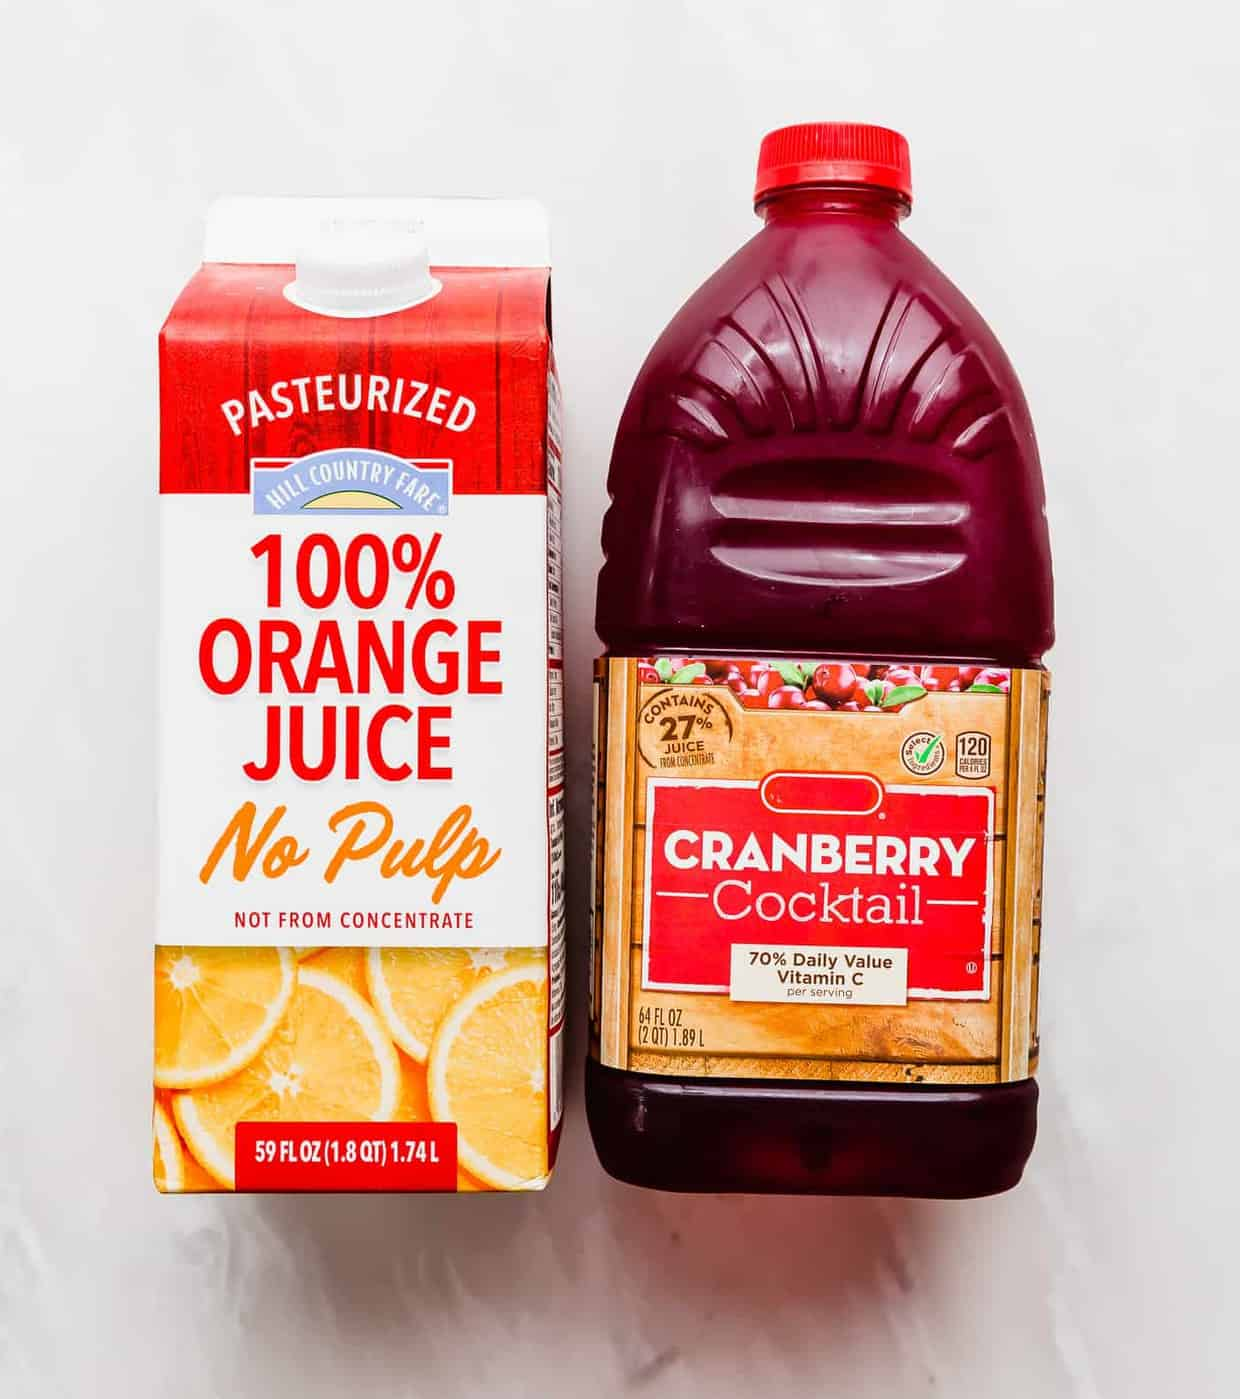 A carton of orange juice and cranberry juice cocktail against a white background.